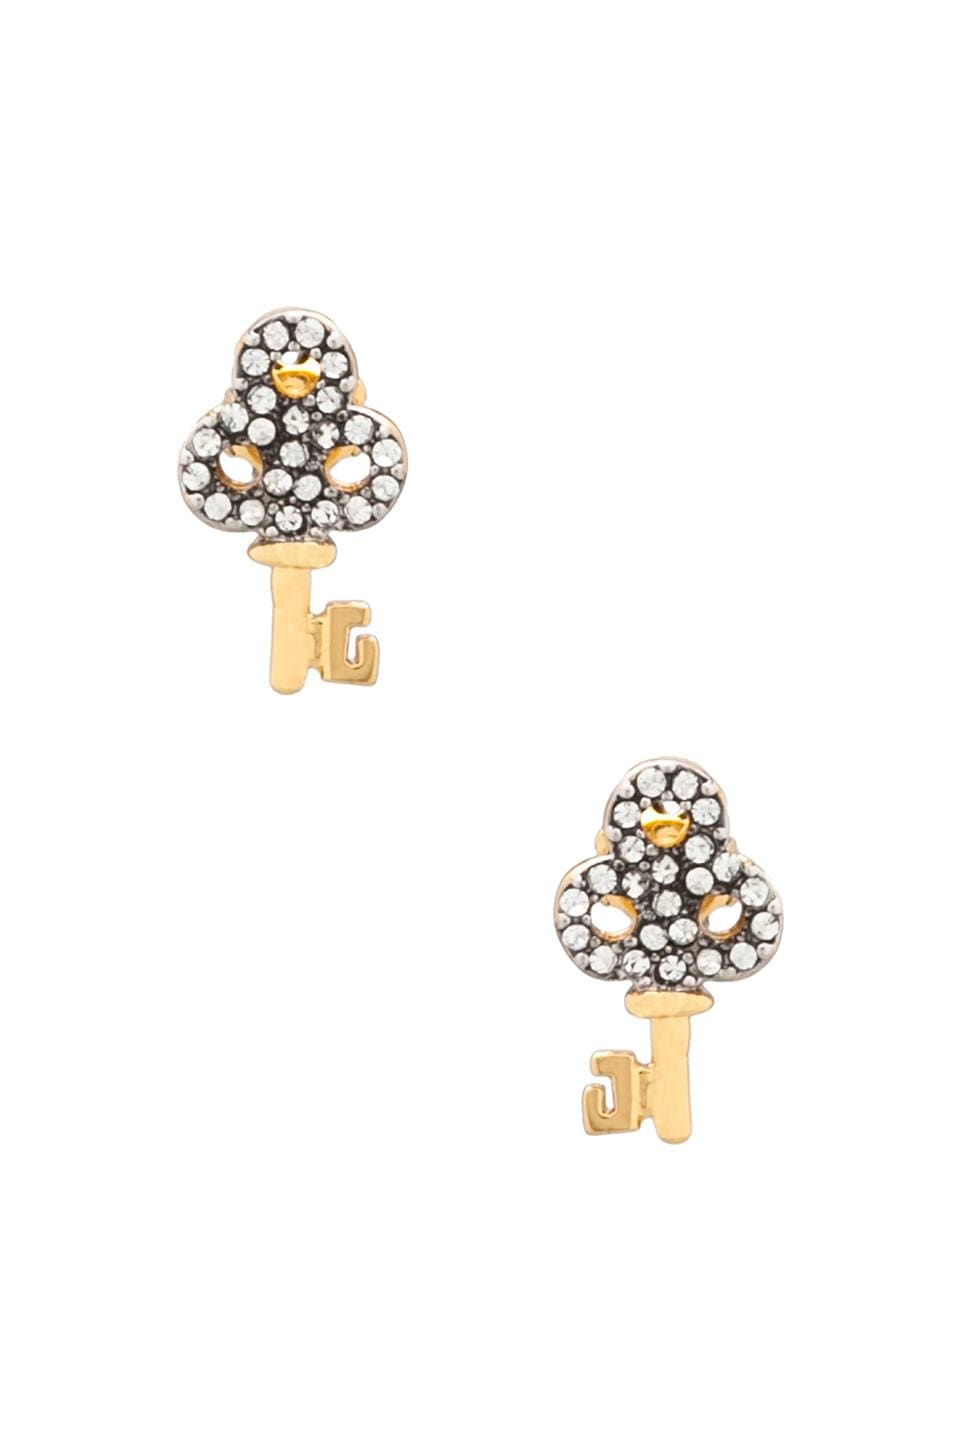 Juicy Couture Charm Minis Pave Key Studs in Gold